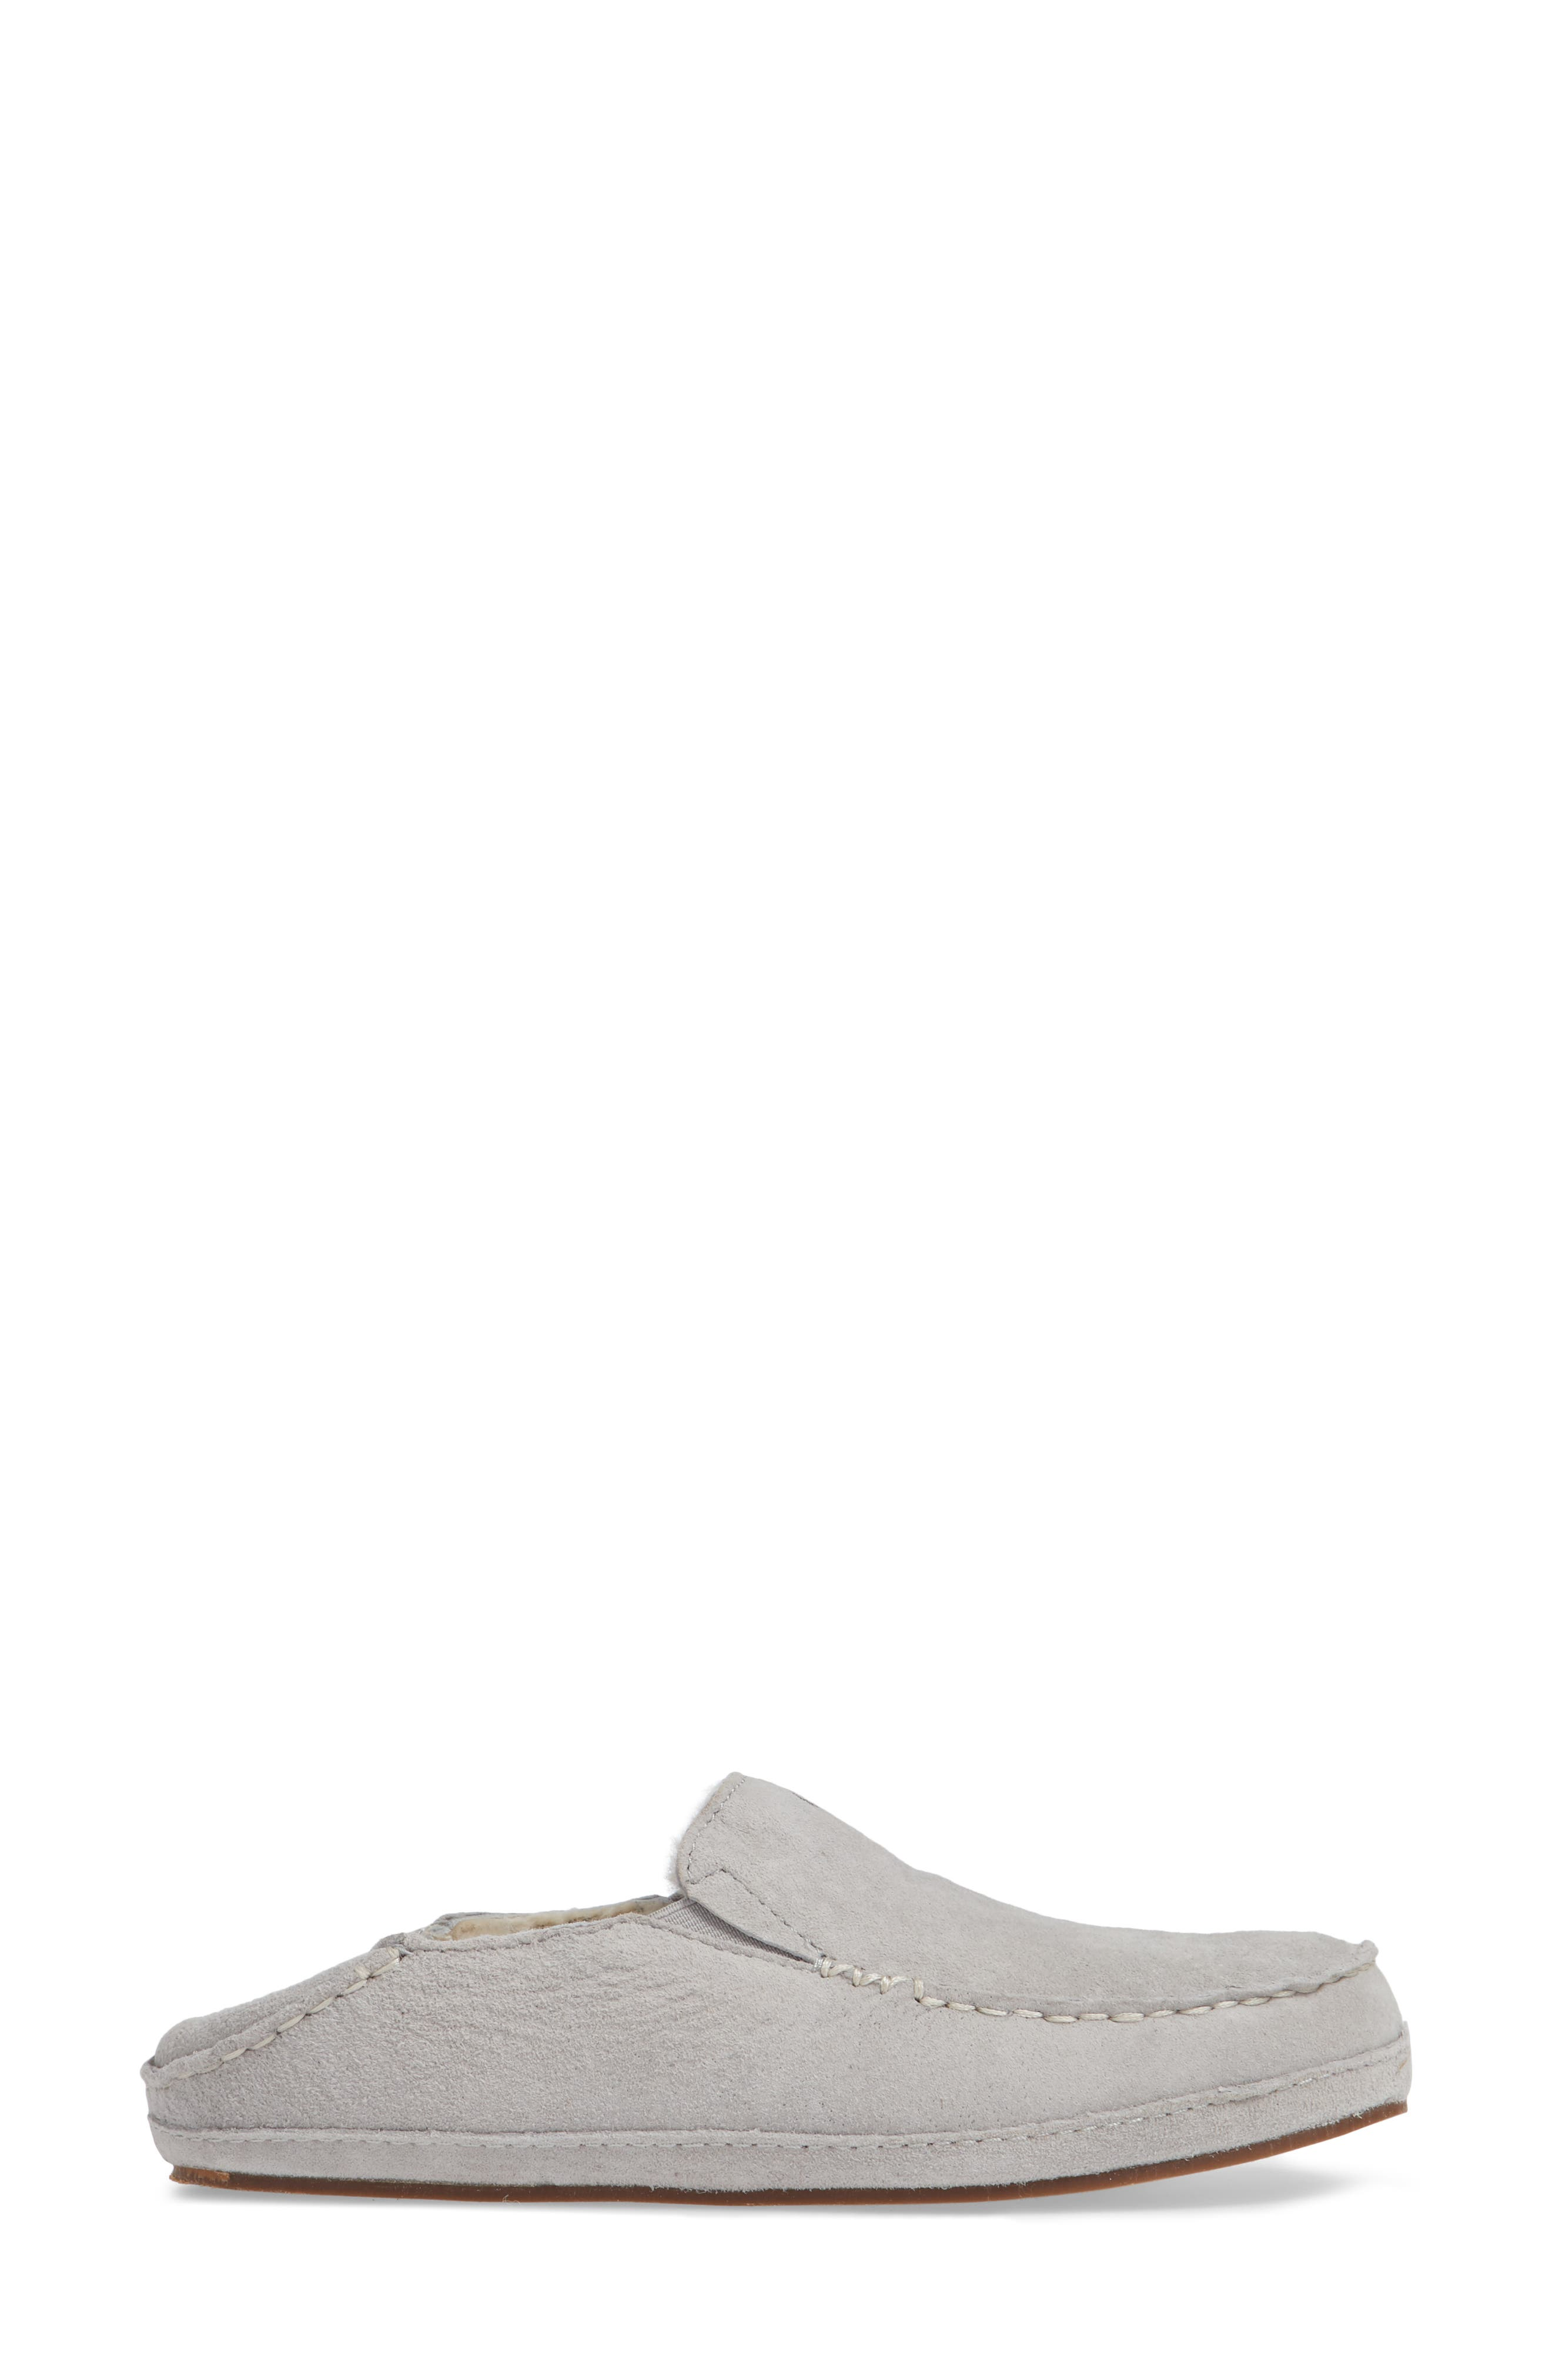 Nohea Nubuck Slipper,                             Alternate thumbnail 4, color,                             PALE GREY/ PALE GREY LEATHER